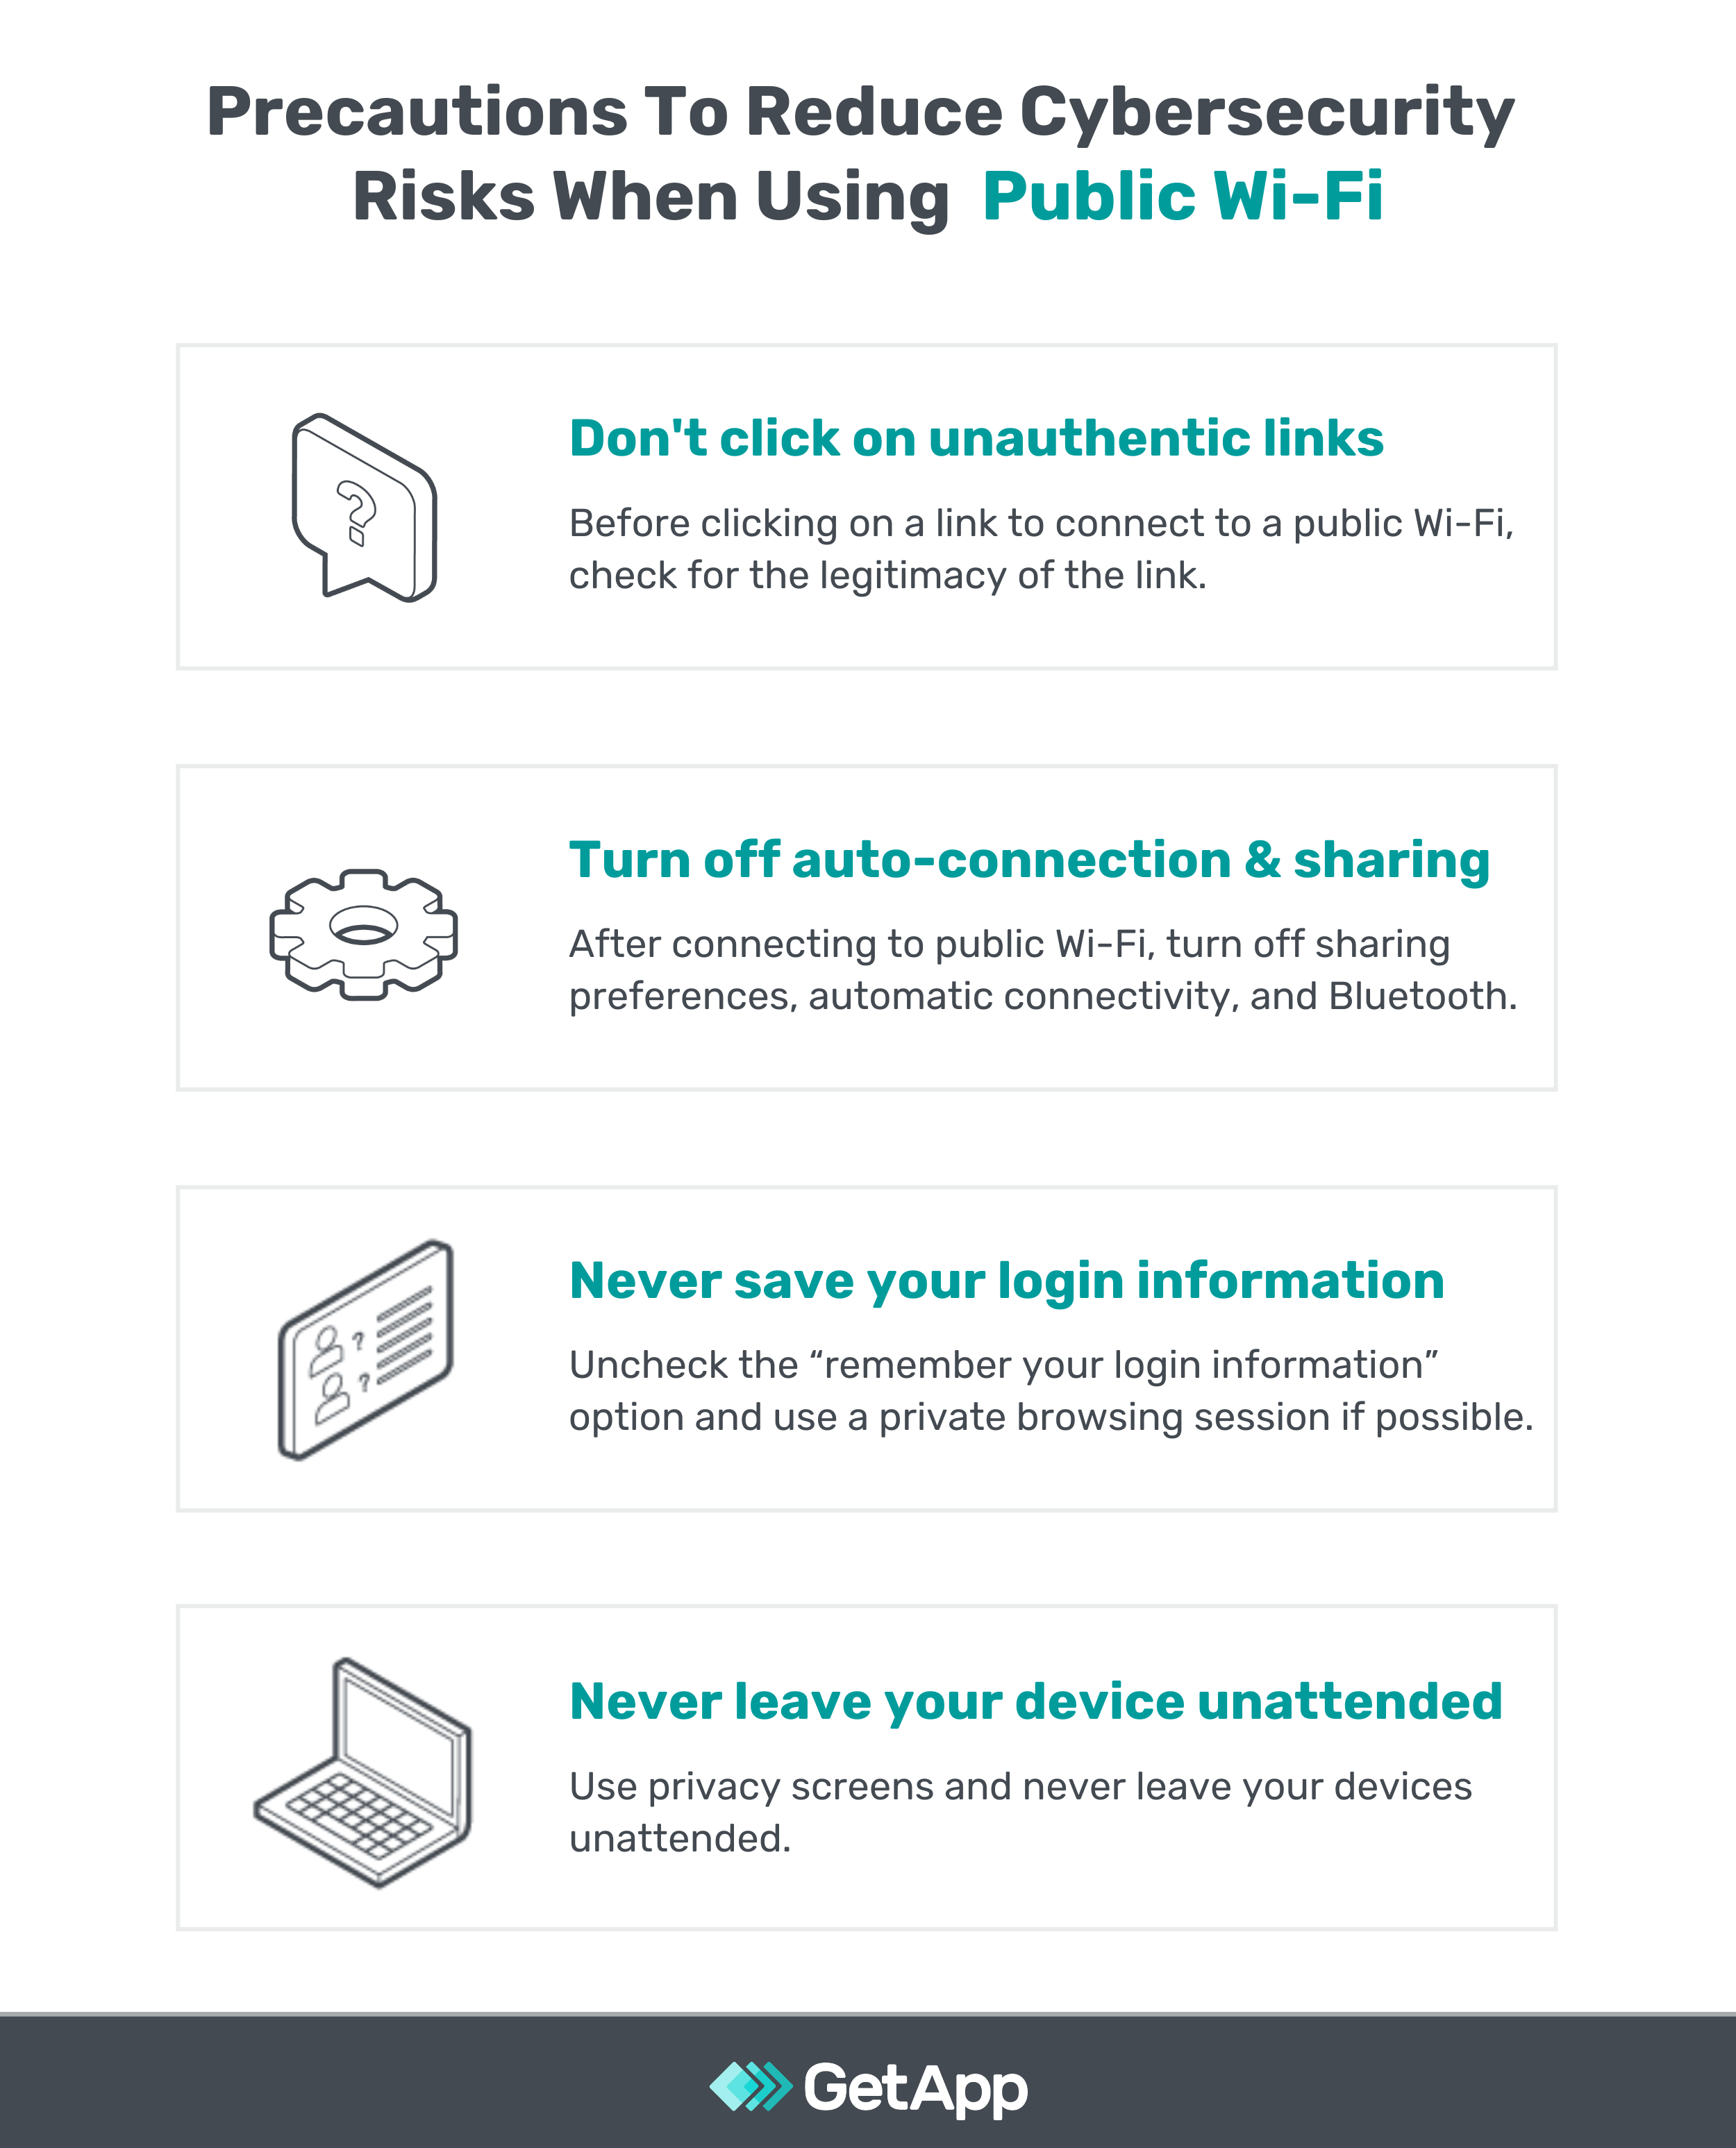 Precautions to reduce cybersecurity risk when using public WI-FI